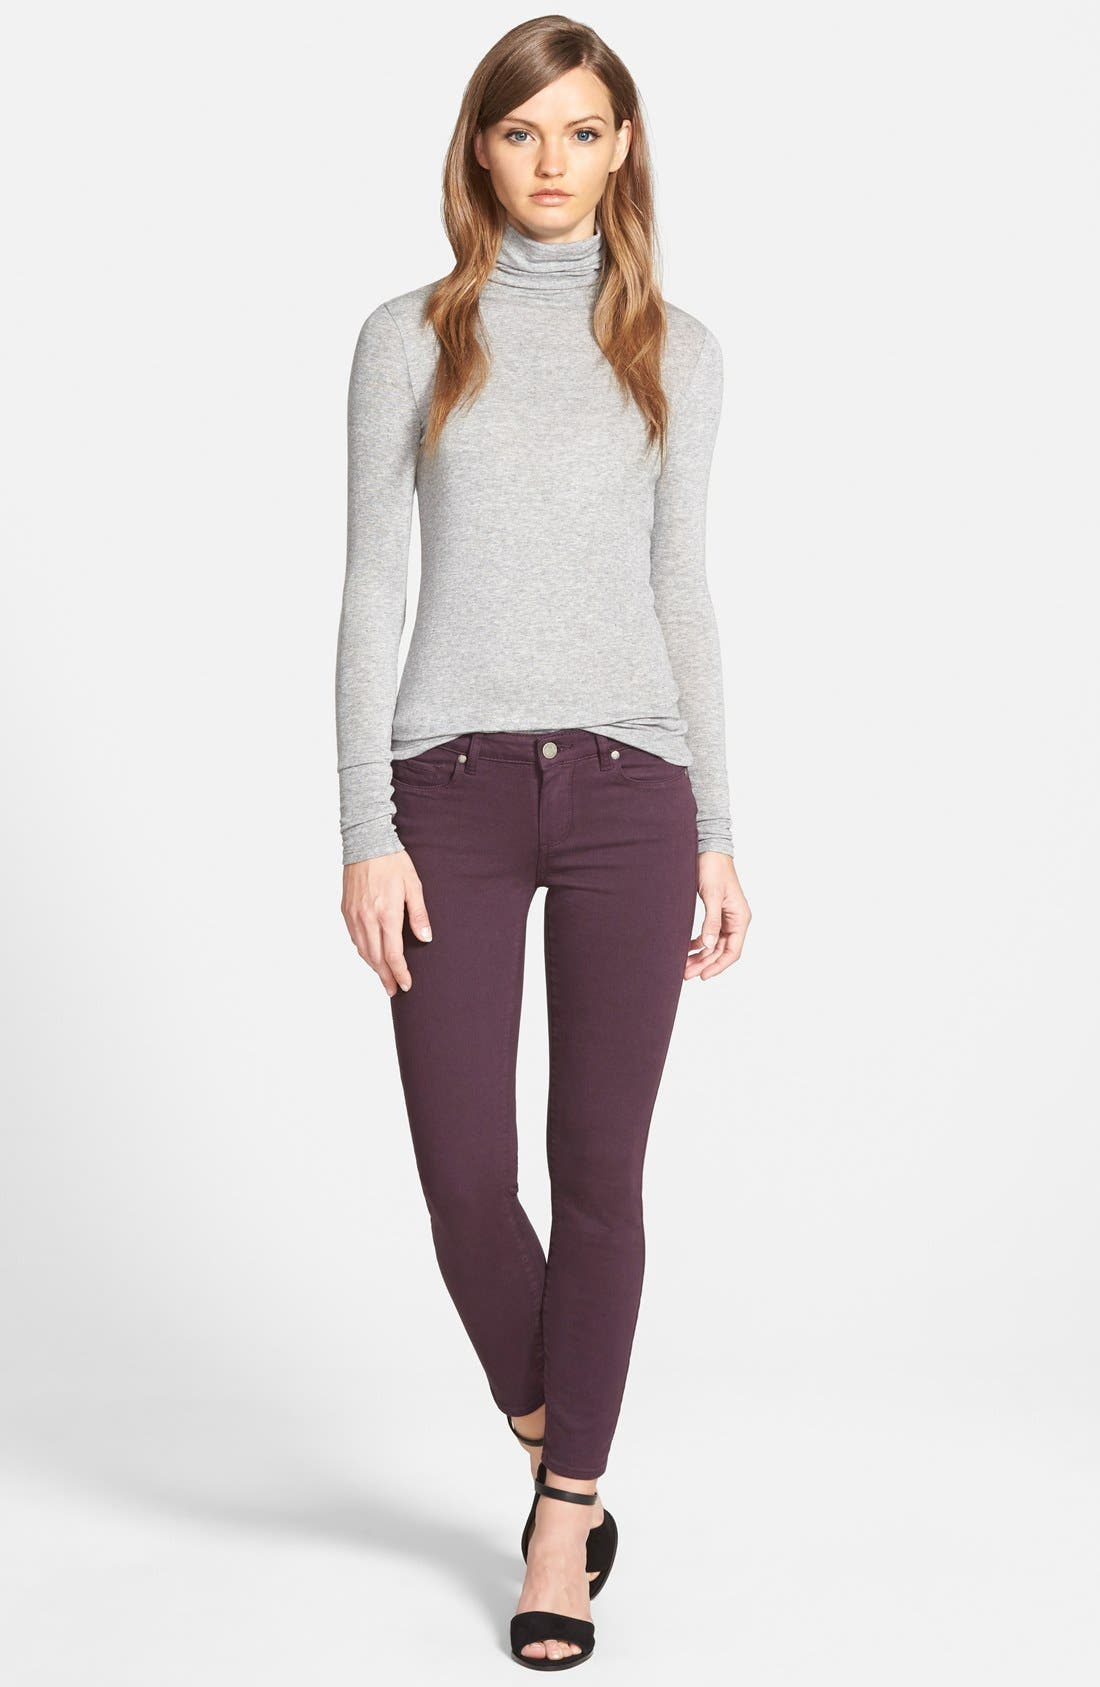 Alternate Image 3  - Paige Denim 'Verdugo' Ankle Skinny Jeans (Autumn Plum) (Nordstrom Exclusive)